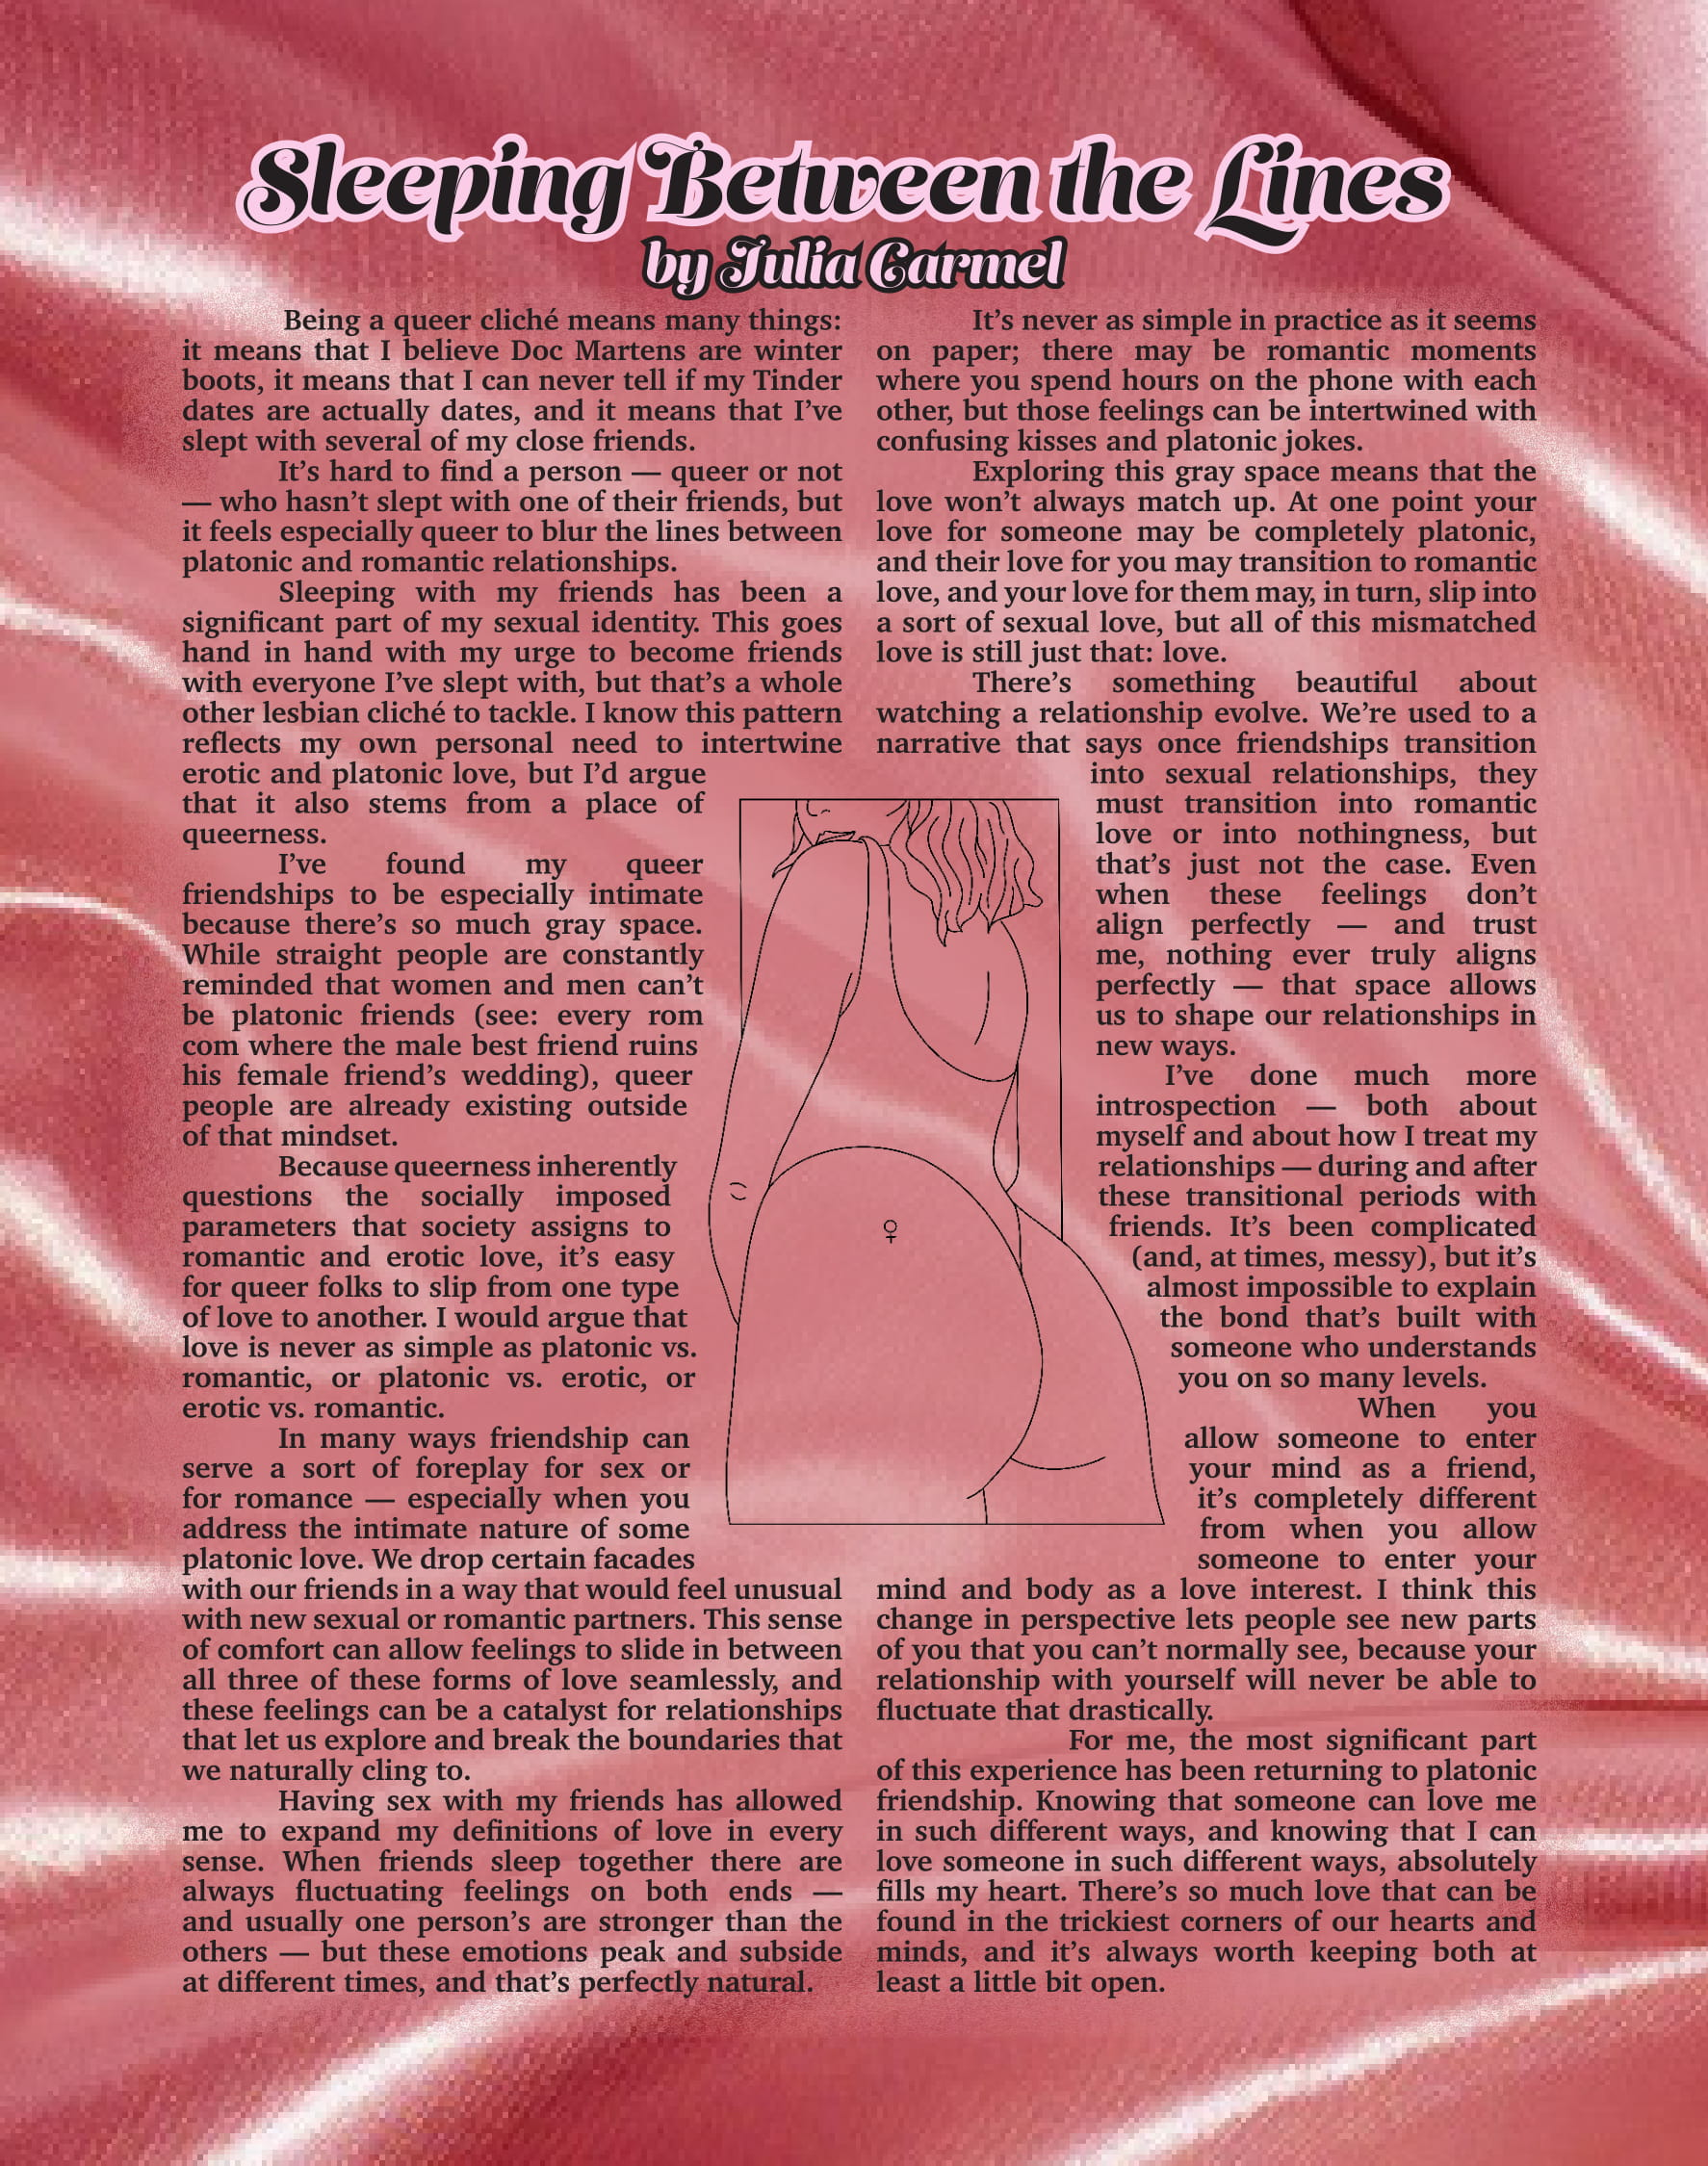 FINAL SEX ISSUE 2019 -10.jpg